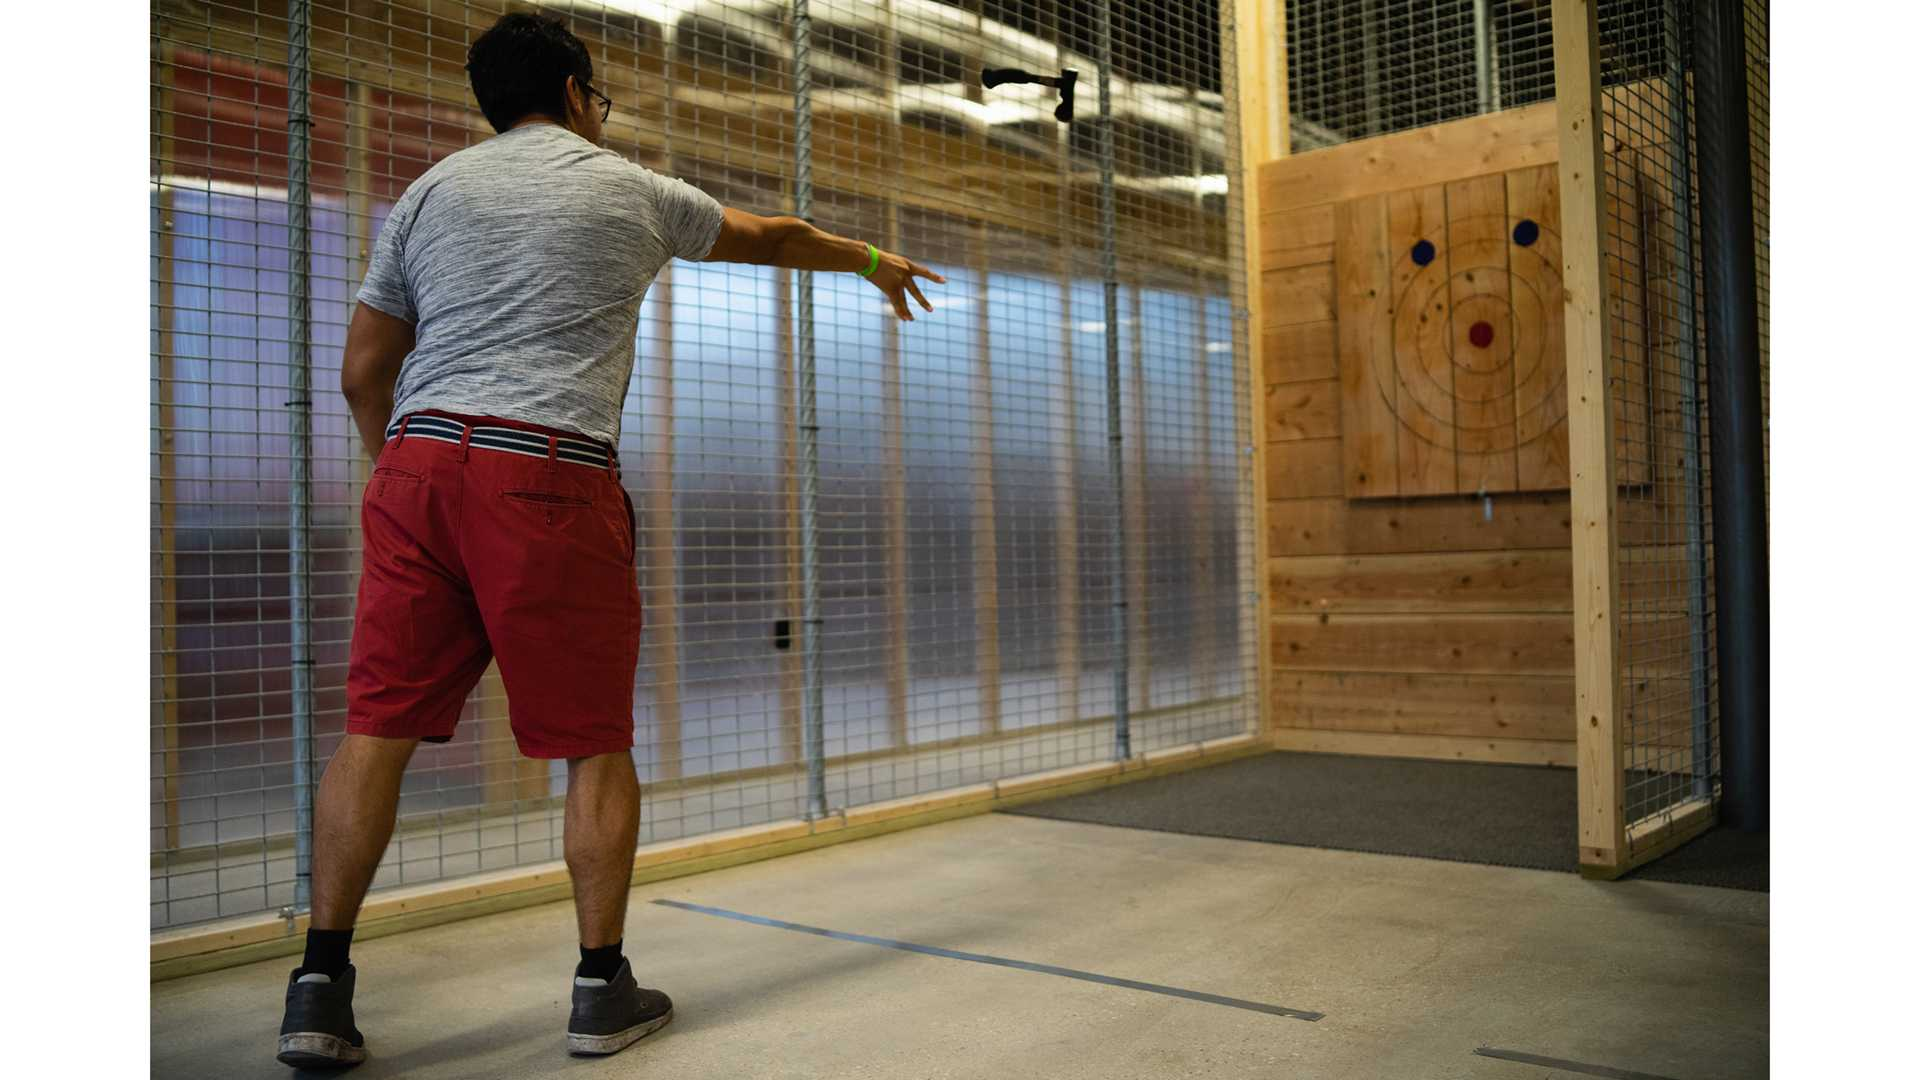 A customer throws a hatchet during the soft opening of Hatchet Jack's on Saturday, June 30, 2018. Hatchet Jack's will be opening soon and allows patrons to throw axes while enjoying beer and wine. (Matthew Finley/The Daily Iowan)